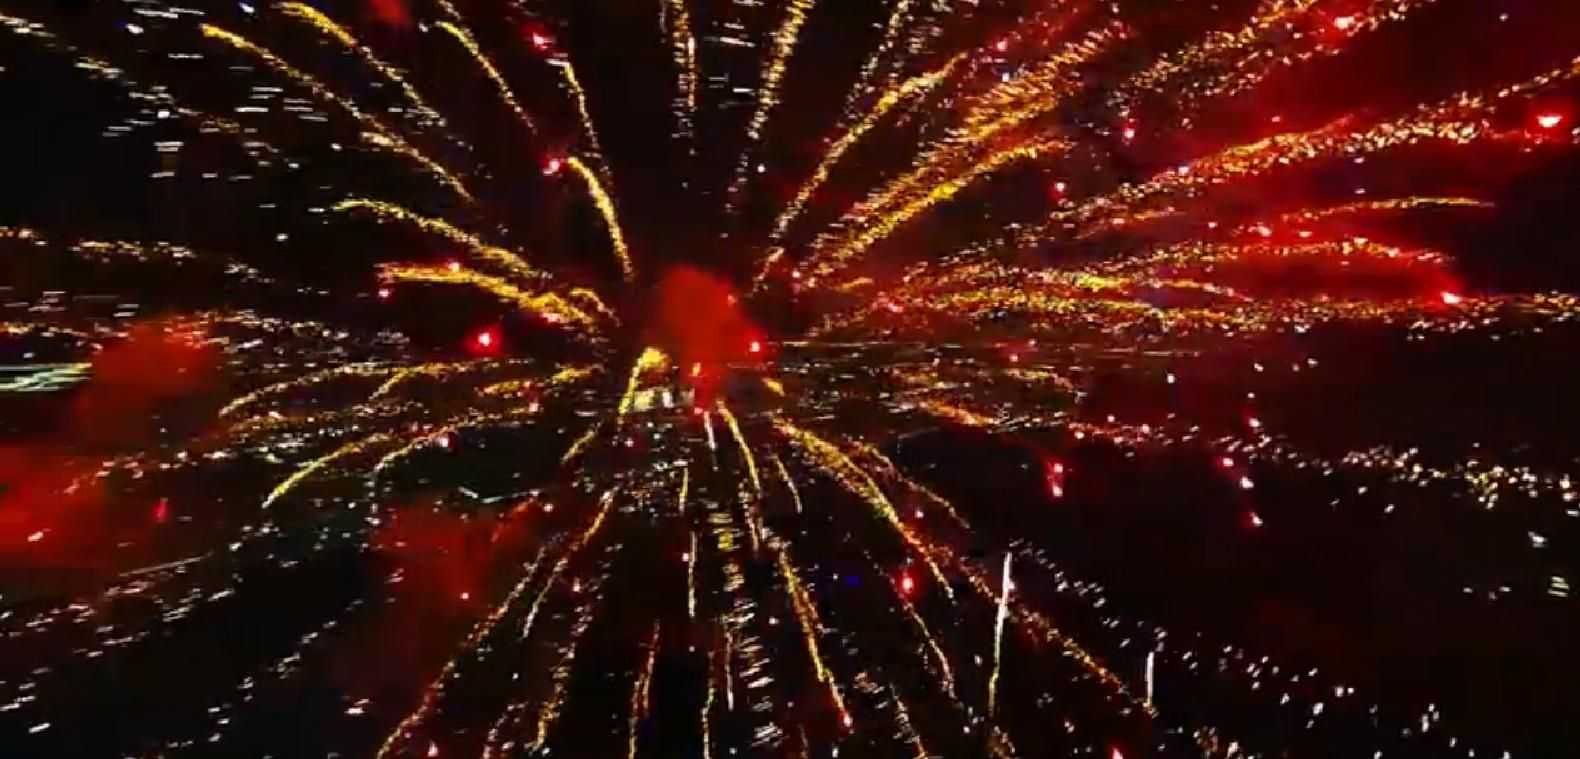 Screen capture 3/3: #Fireworks as filmed from a drone. This awesome video has gone viral, as well it should—it's magnificent! Watch it here: http://youtu.be/a9KZ3jgbbmI